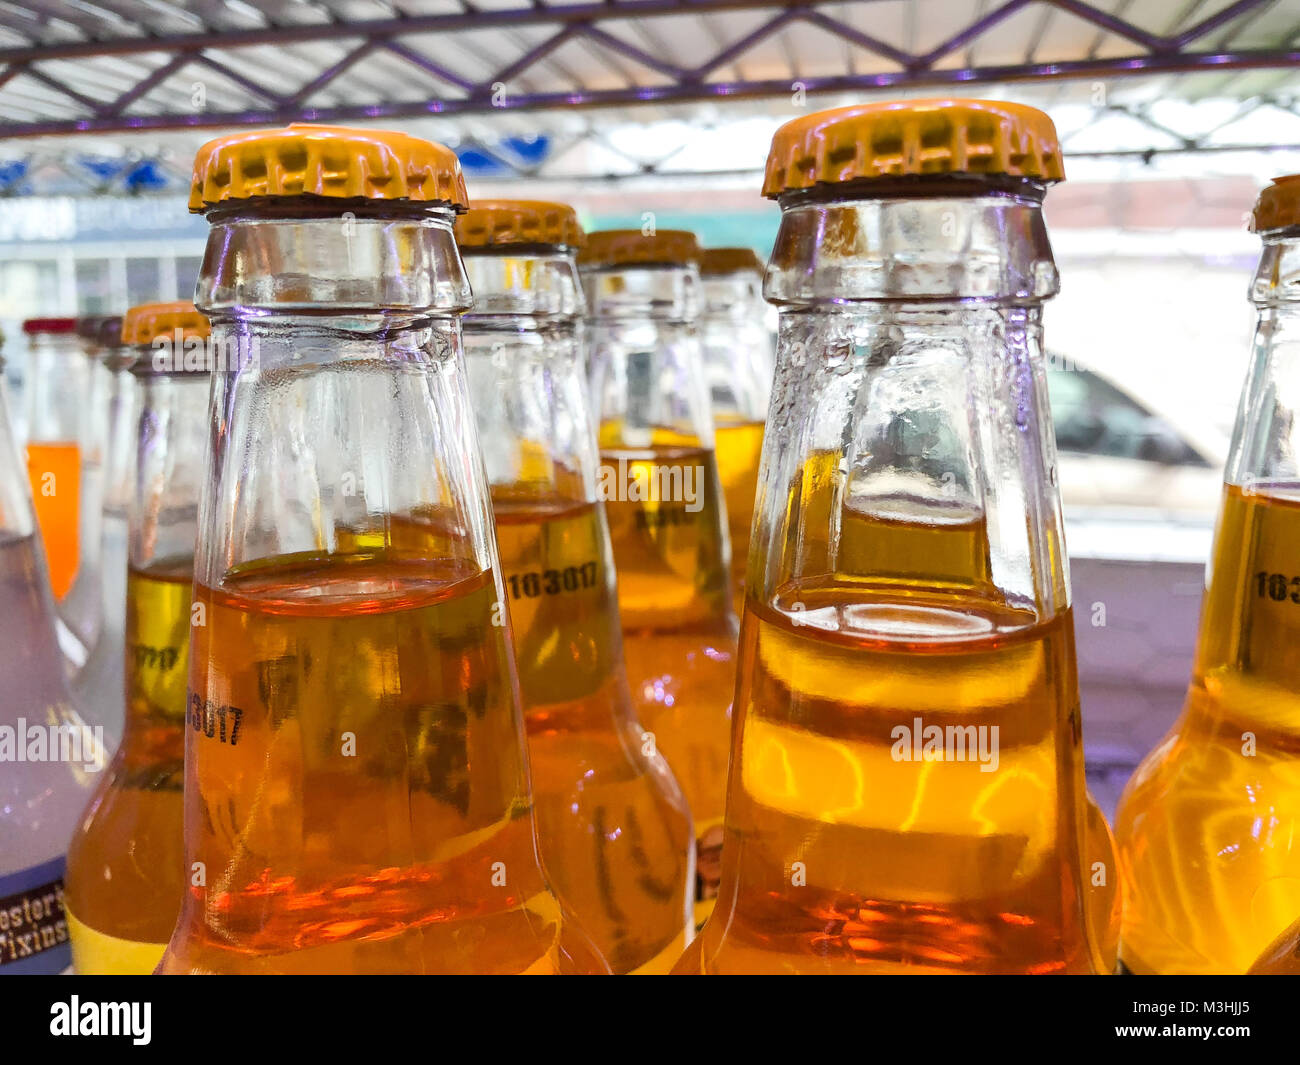 Soda Shop Drink Stock Photos & Soda Shop Drink Stock Images - Alamy